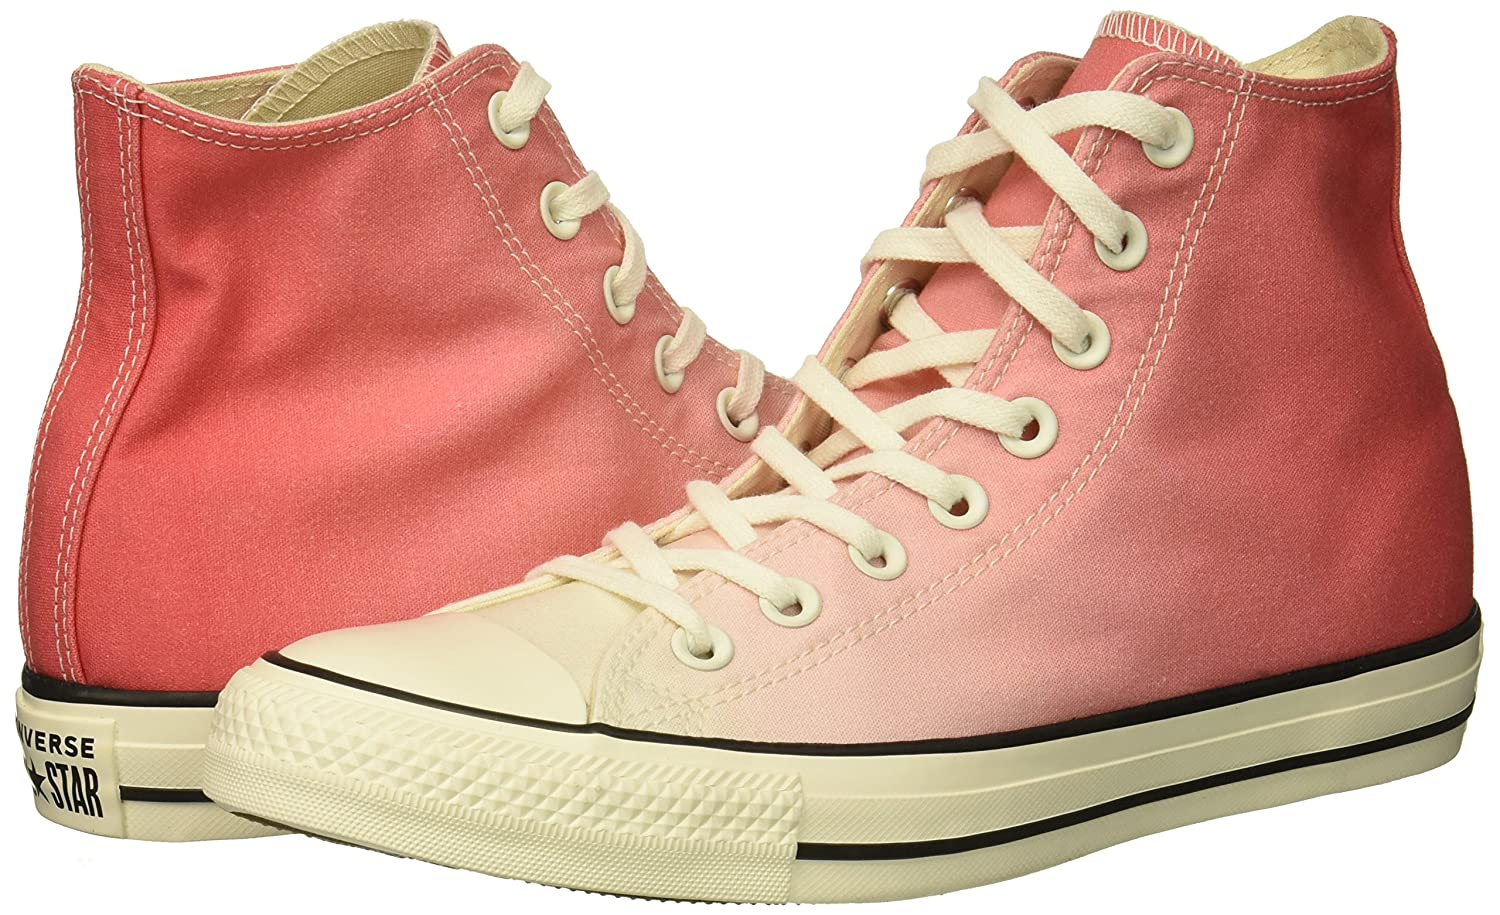 Converse Women's Chuck Taylor All Star Ombre High Top Sneaker B078NGDG5Z 7 M US|Punch Coral/Egret/Egret